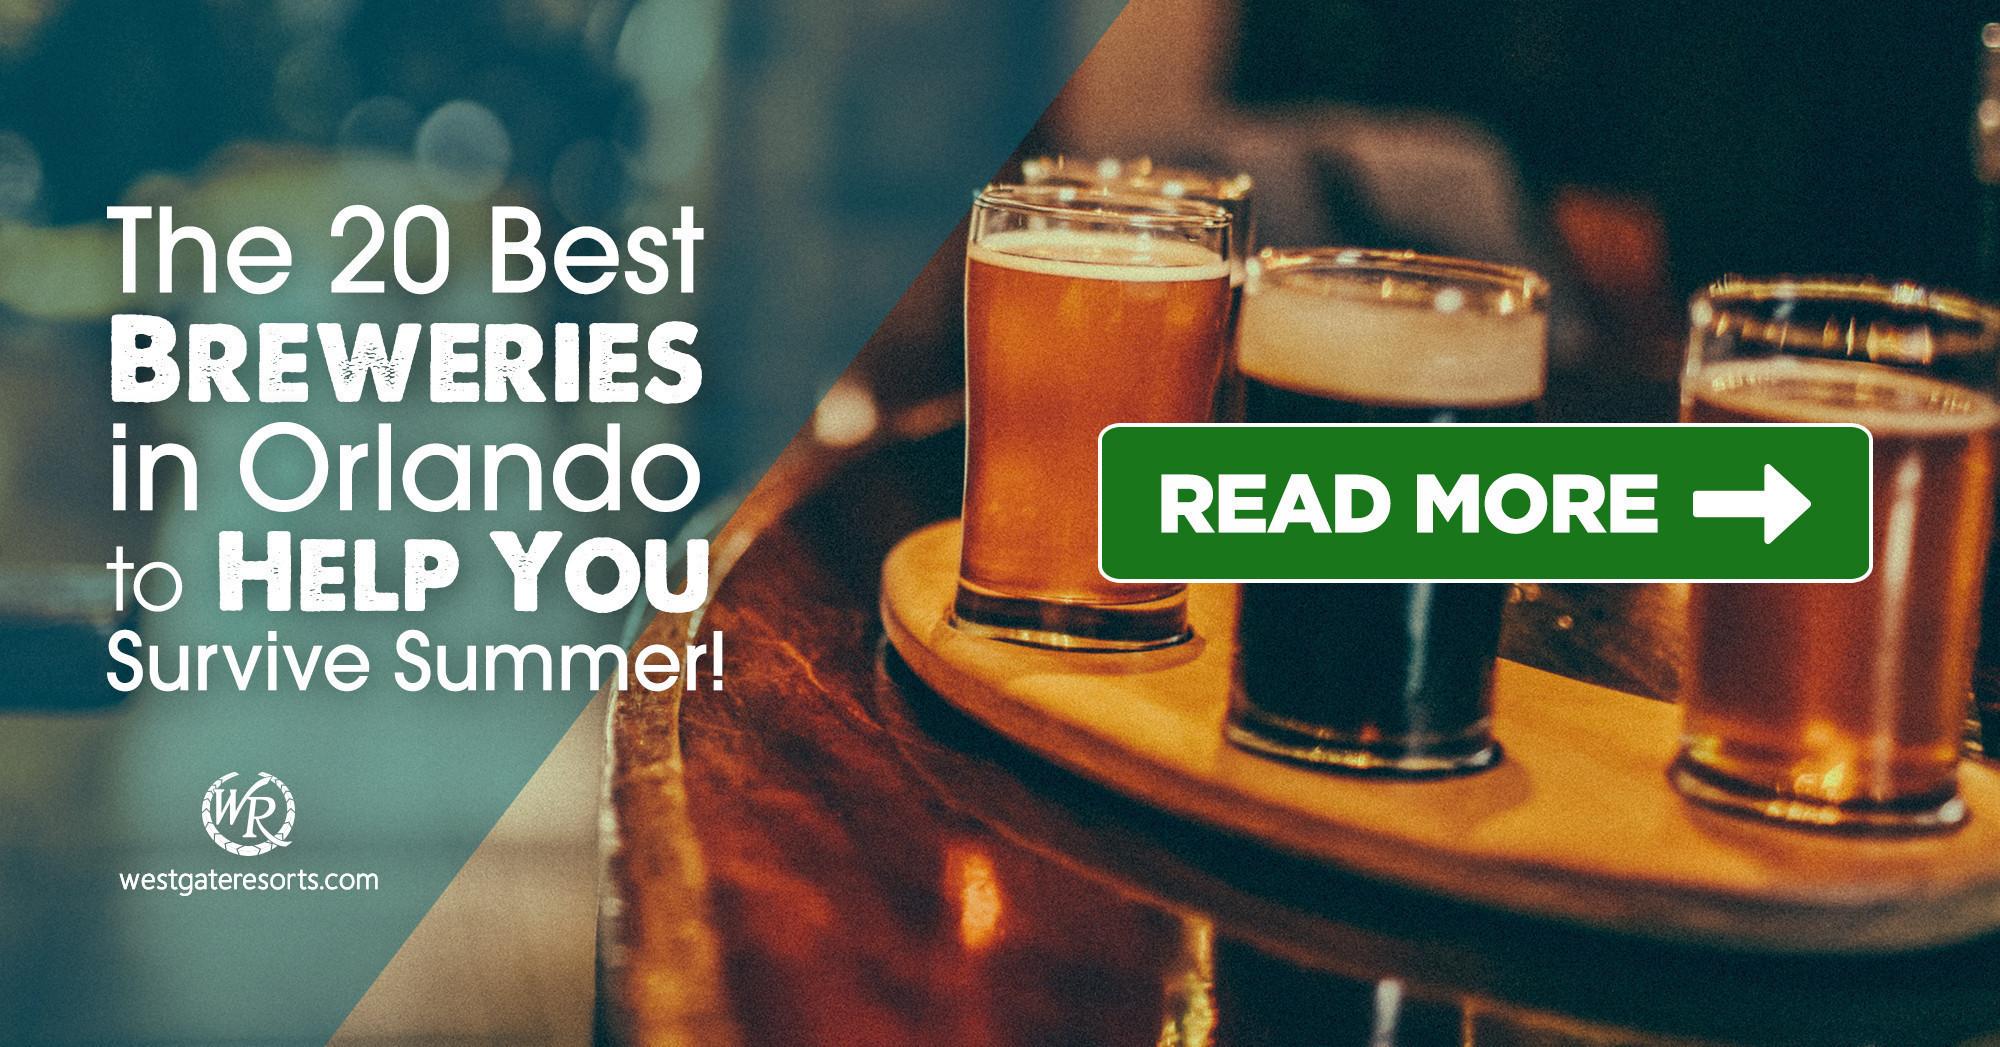 Orlando Breweries | The 20 Best Breweries in Orlando to Help You Survive Summer